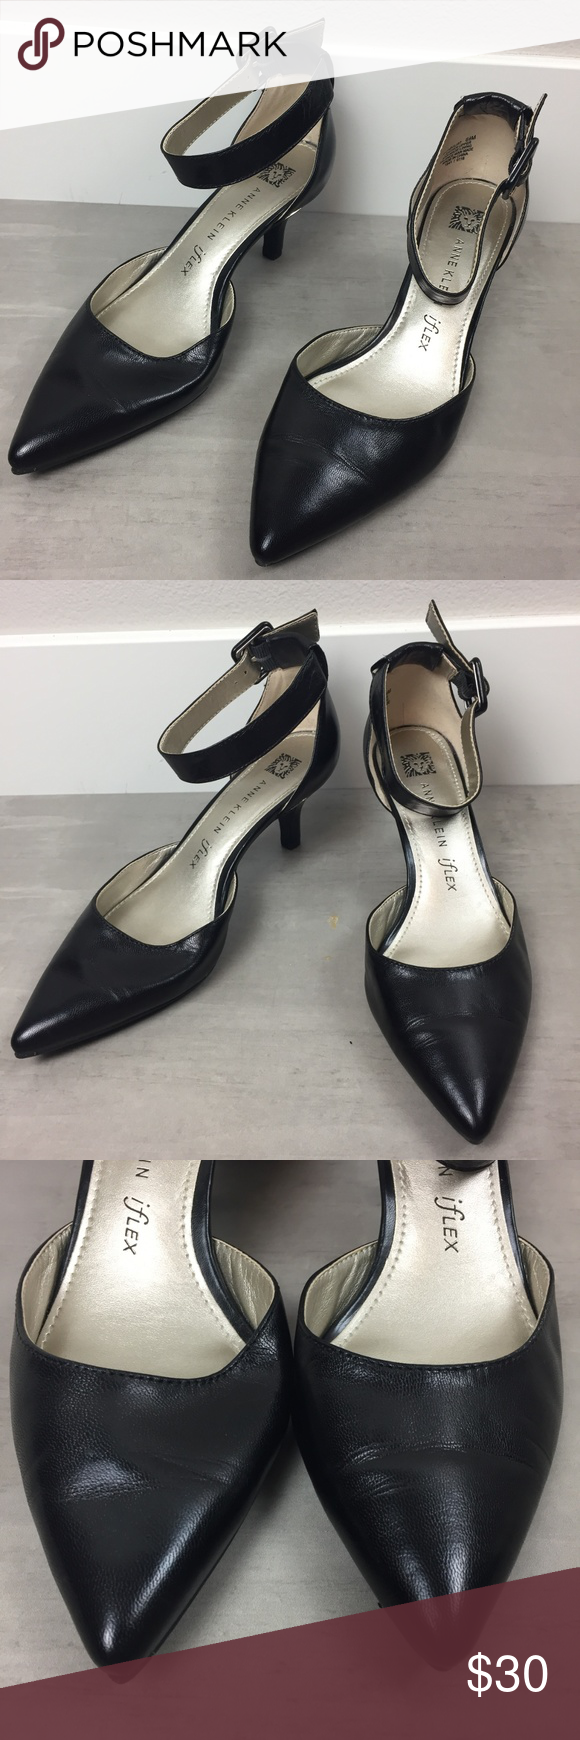 Anne Klein Iflex Size 6 1 2m Kitten Heel Black Euc Anne Klein Shoes Black Heels Anne Klein